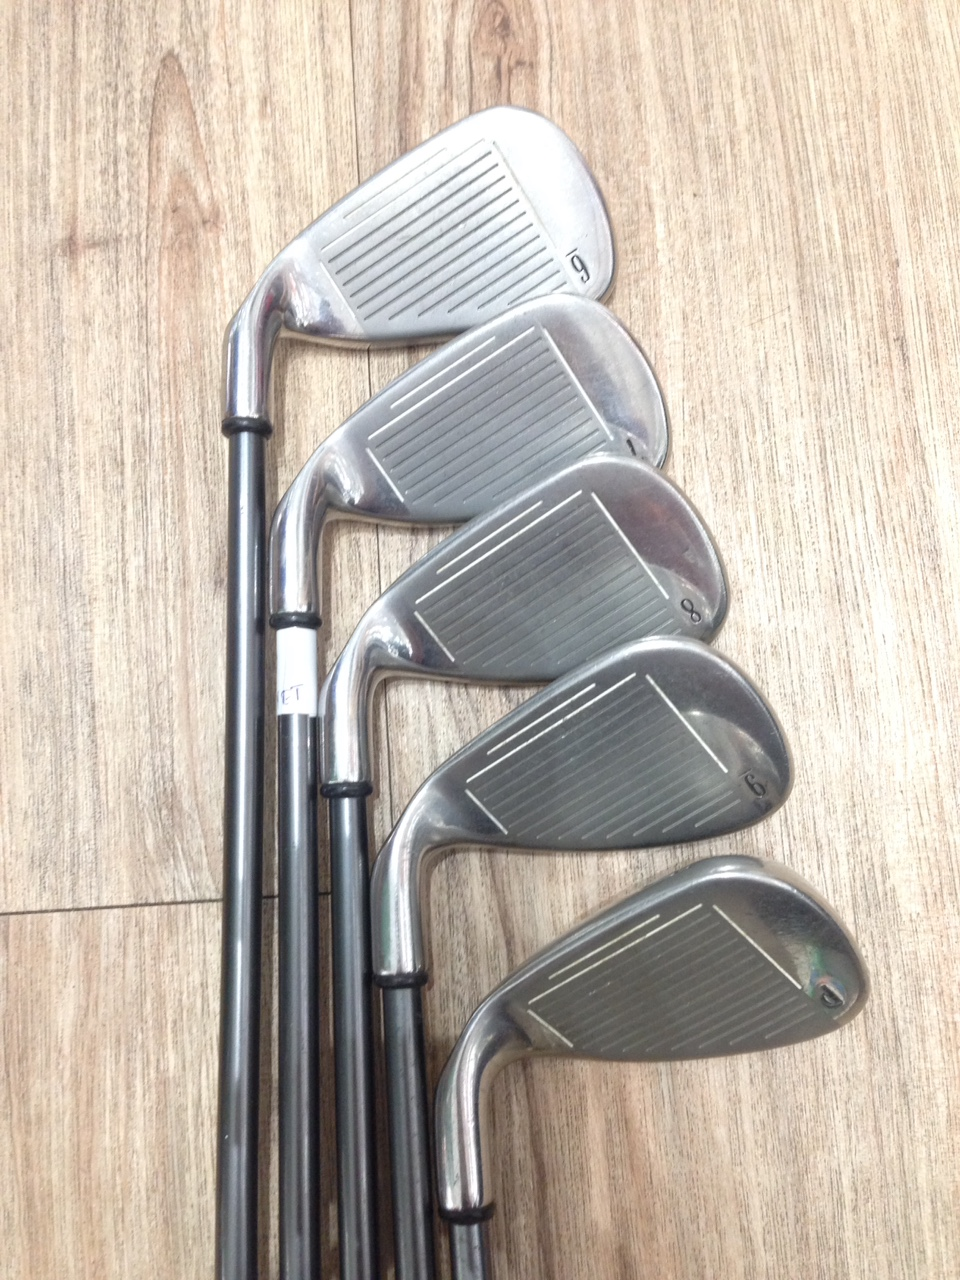 https://linkinggolf.com/iron-sets-cu-nam-callaway-set-22